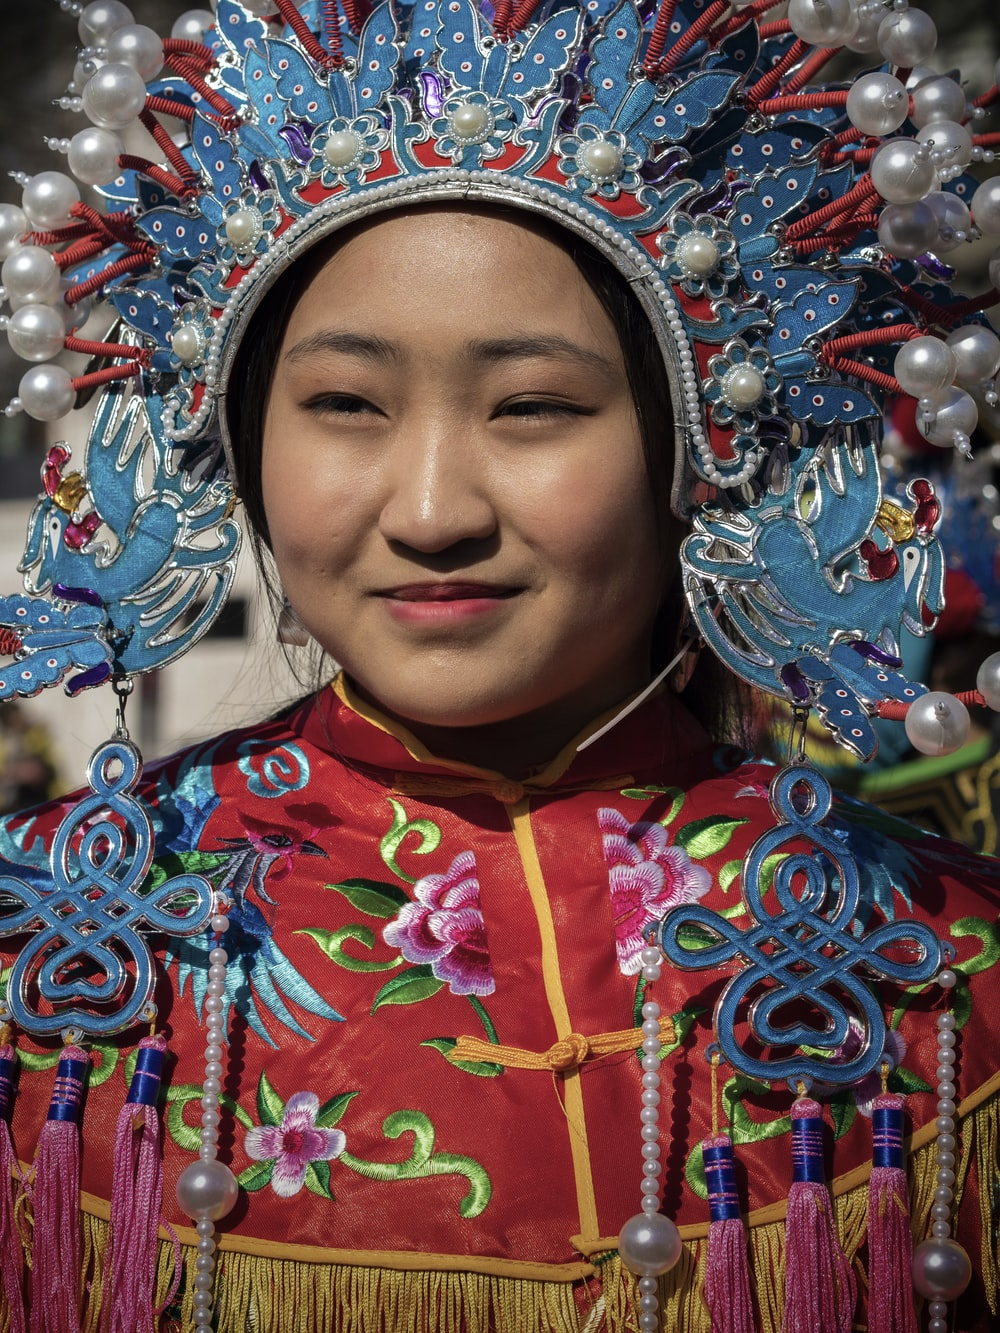 woman wearing blue and red head dress costume